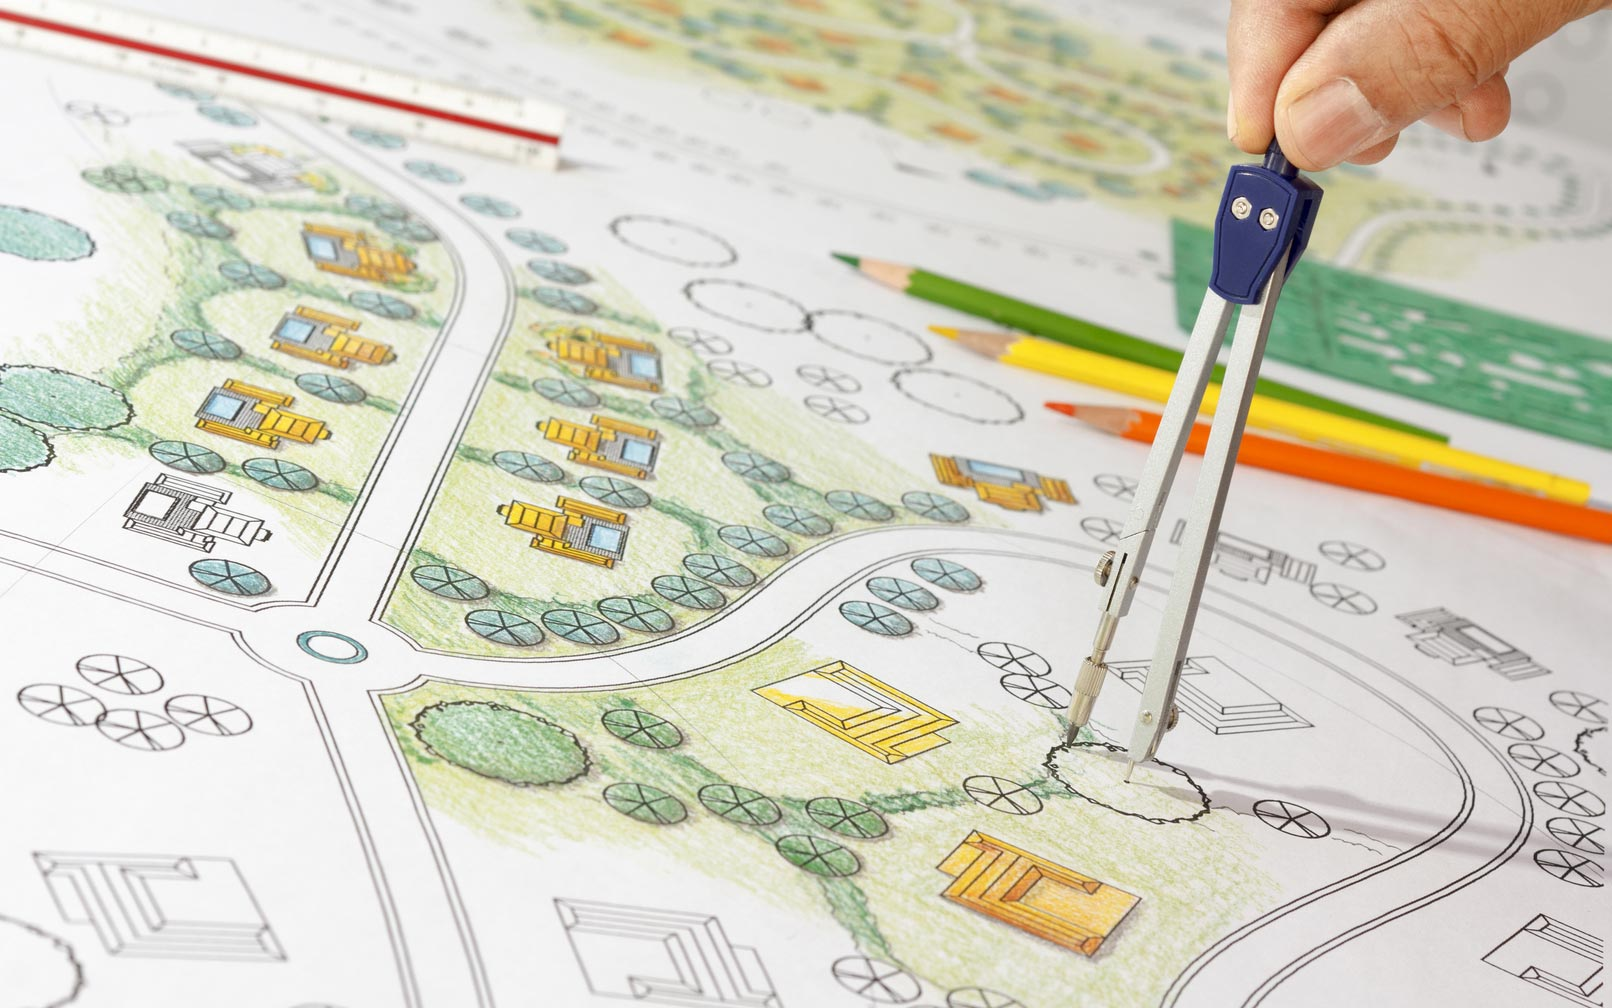 Landscape Architecture Site Analysis: How To Perfect Your Landscape Design